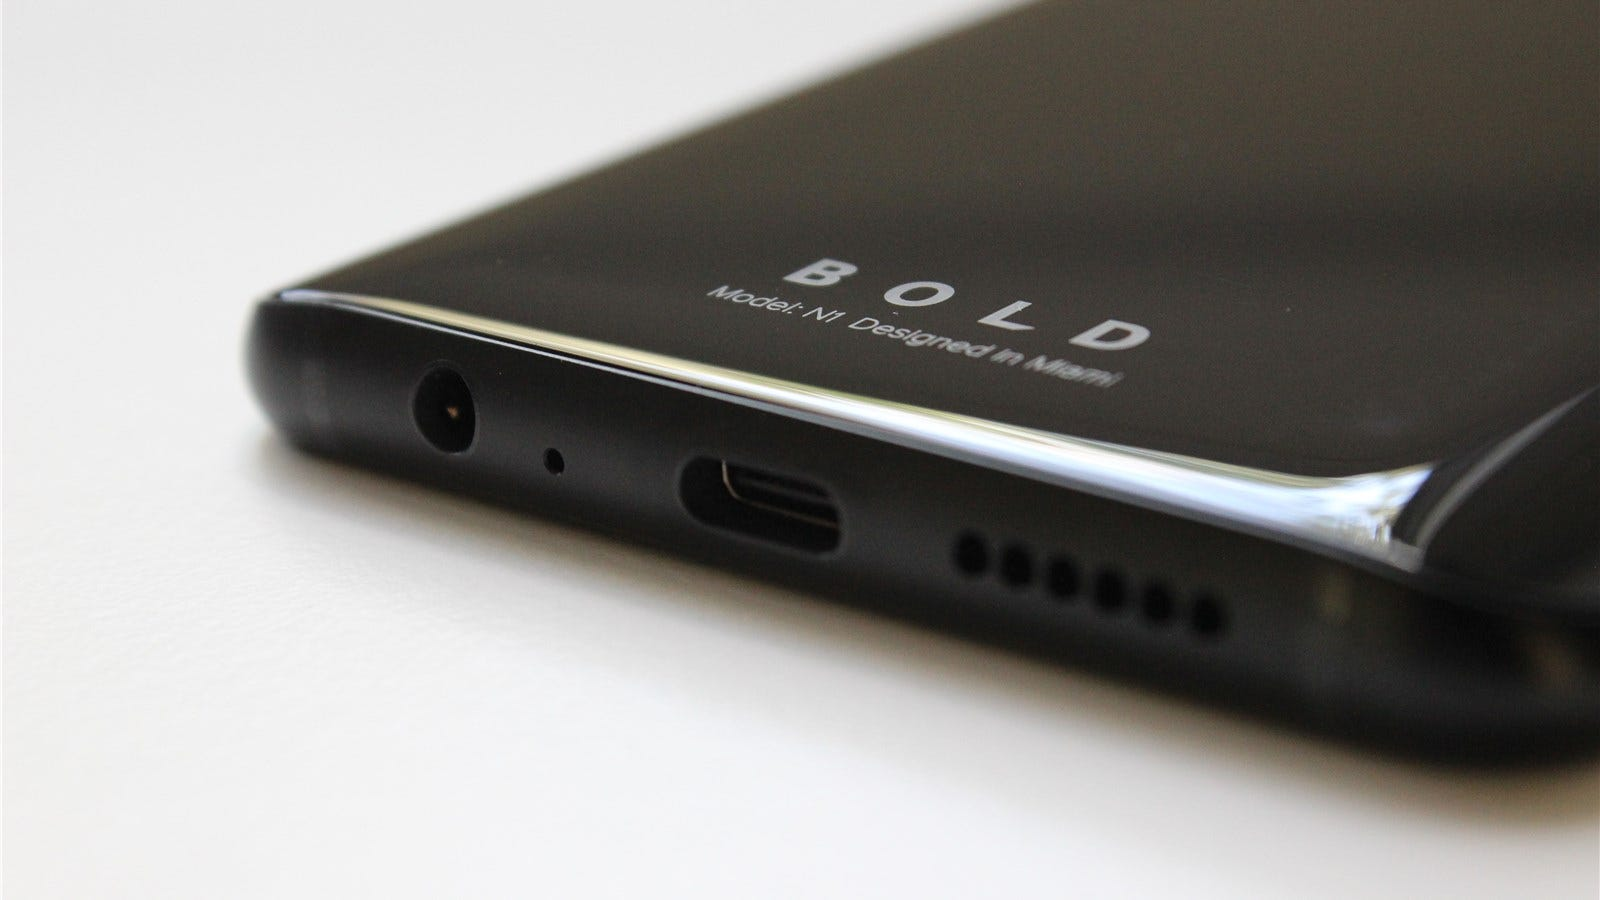 The BOLD N1's headphone jack and USB-C Port